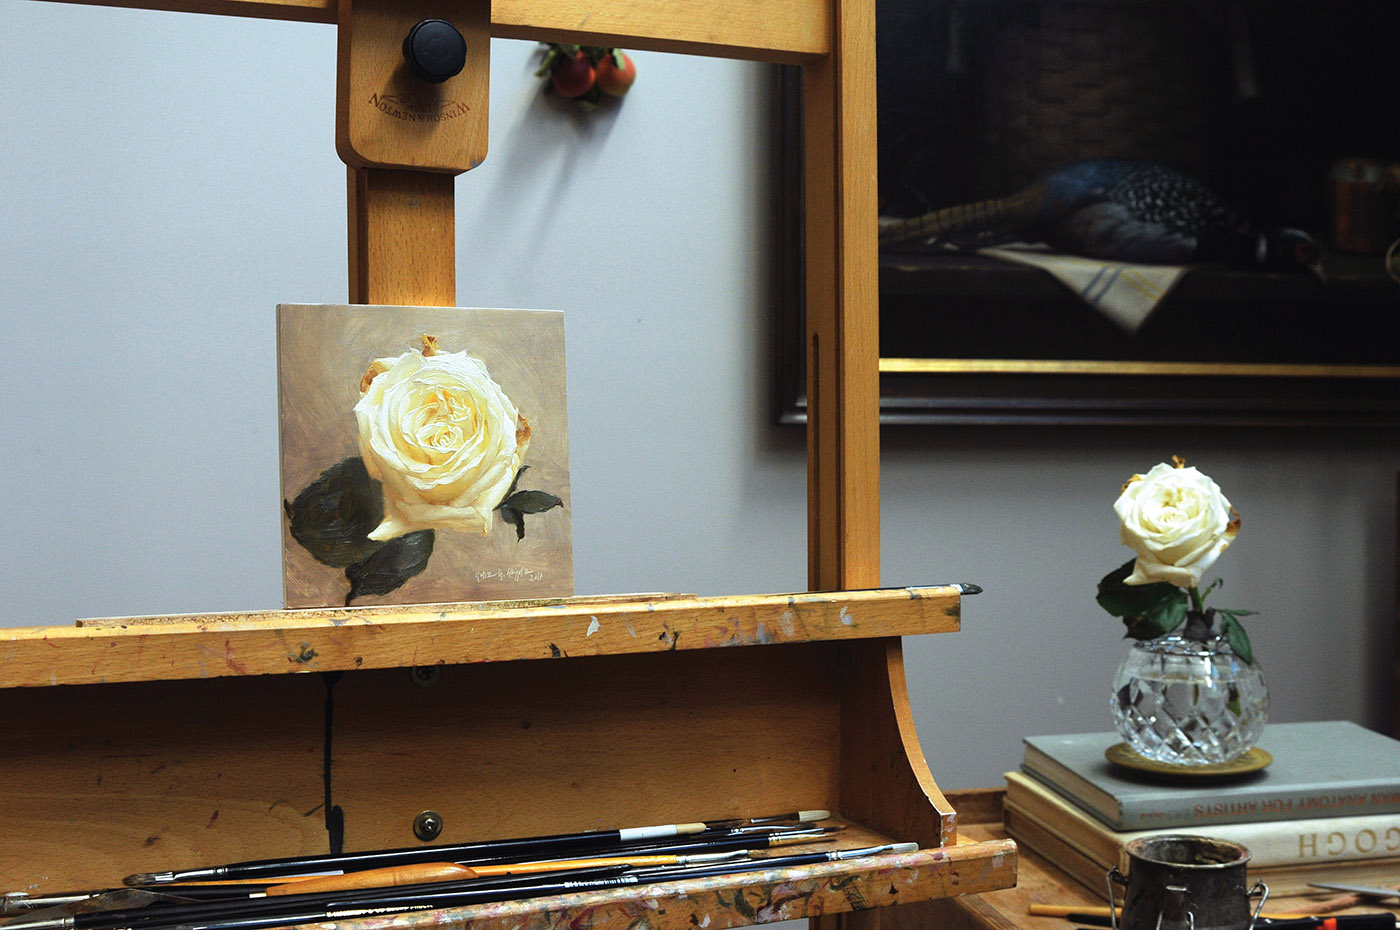 Katie Whipple How to Paint a Rose, final